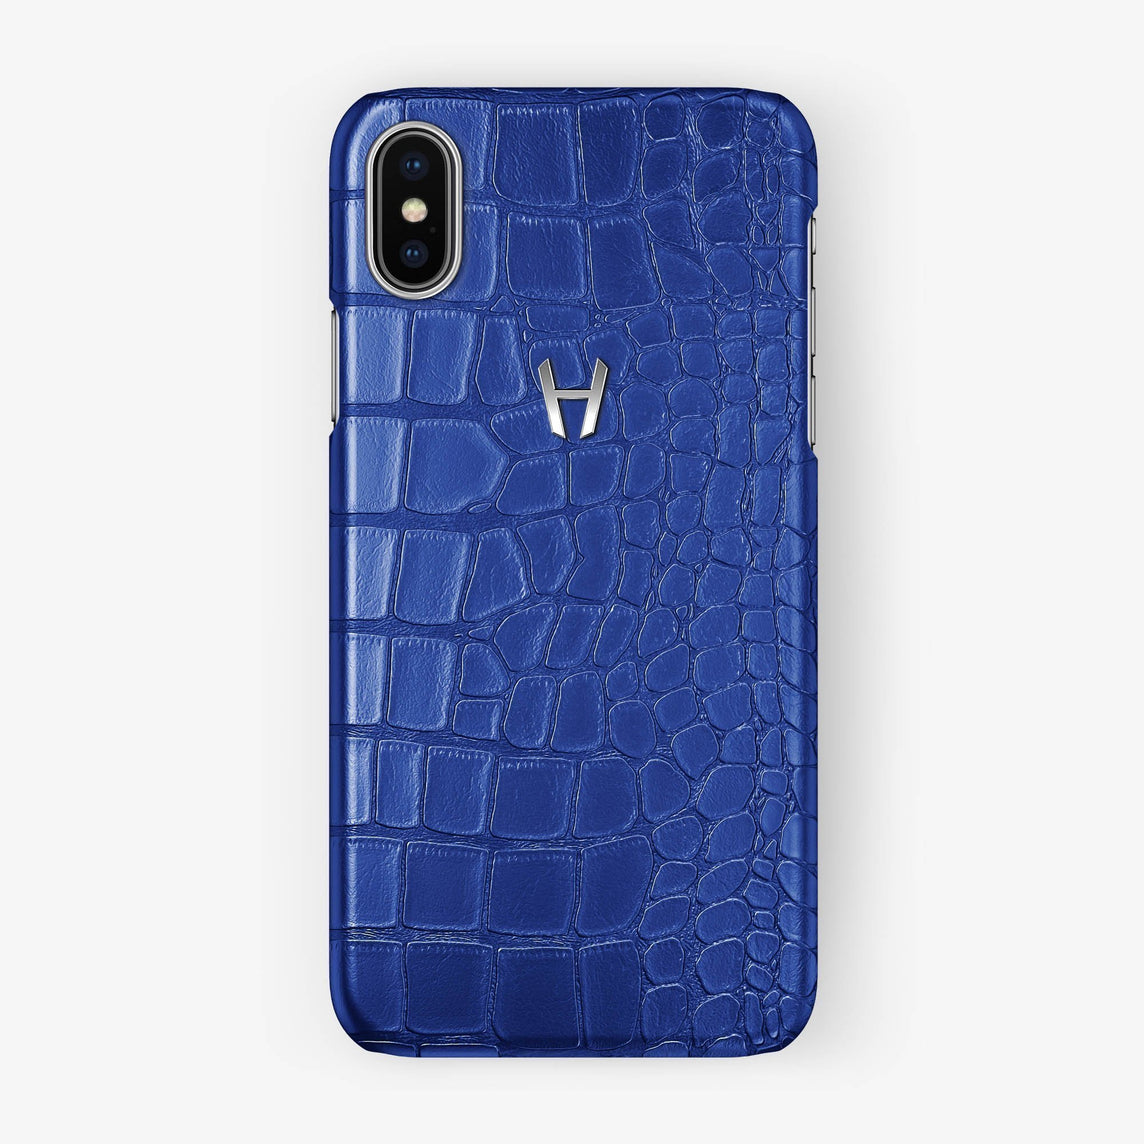 Alligator [iPhone Case] [model:iphone-xsmax-case] [colour:peony-blue] [finishing:stainless-steel] - Hadoro